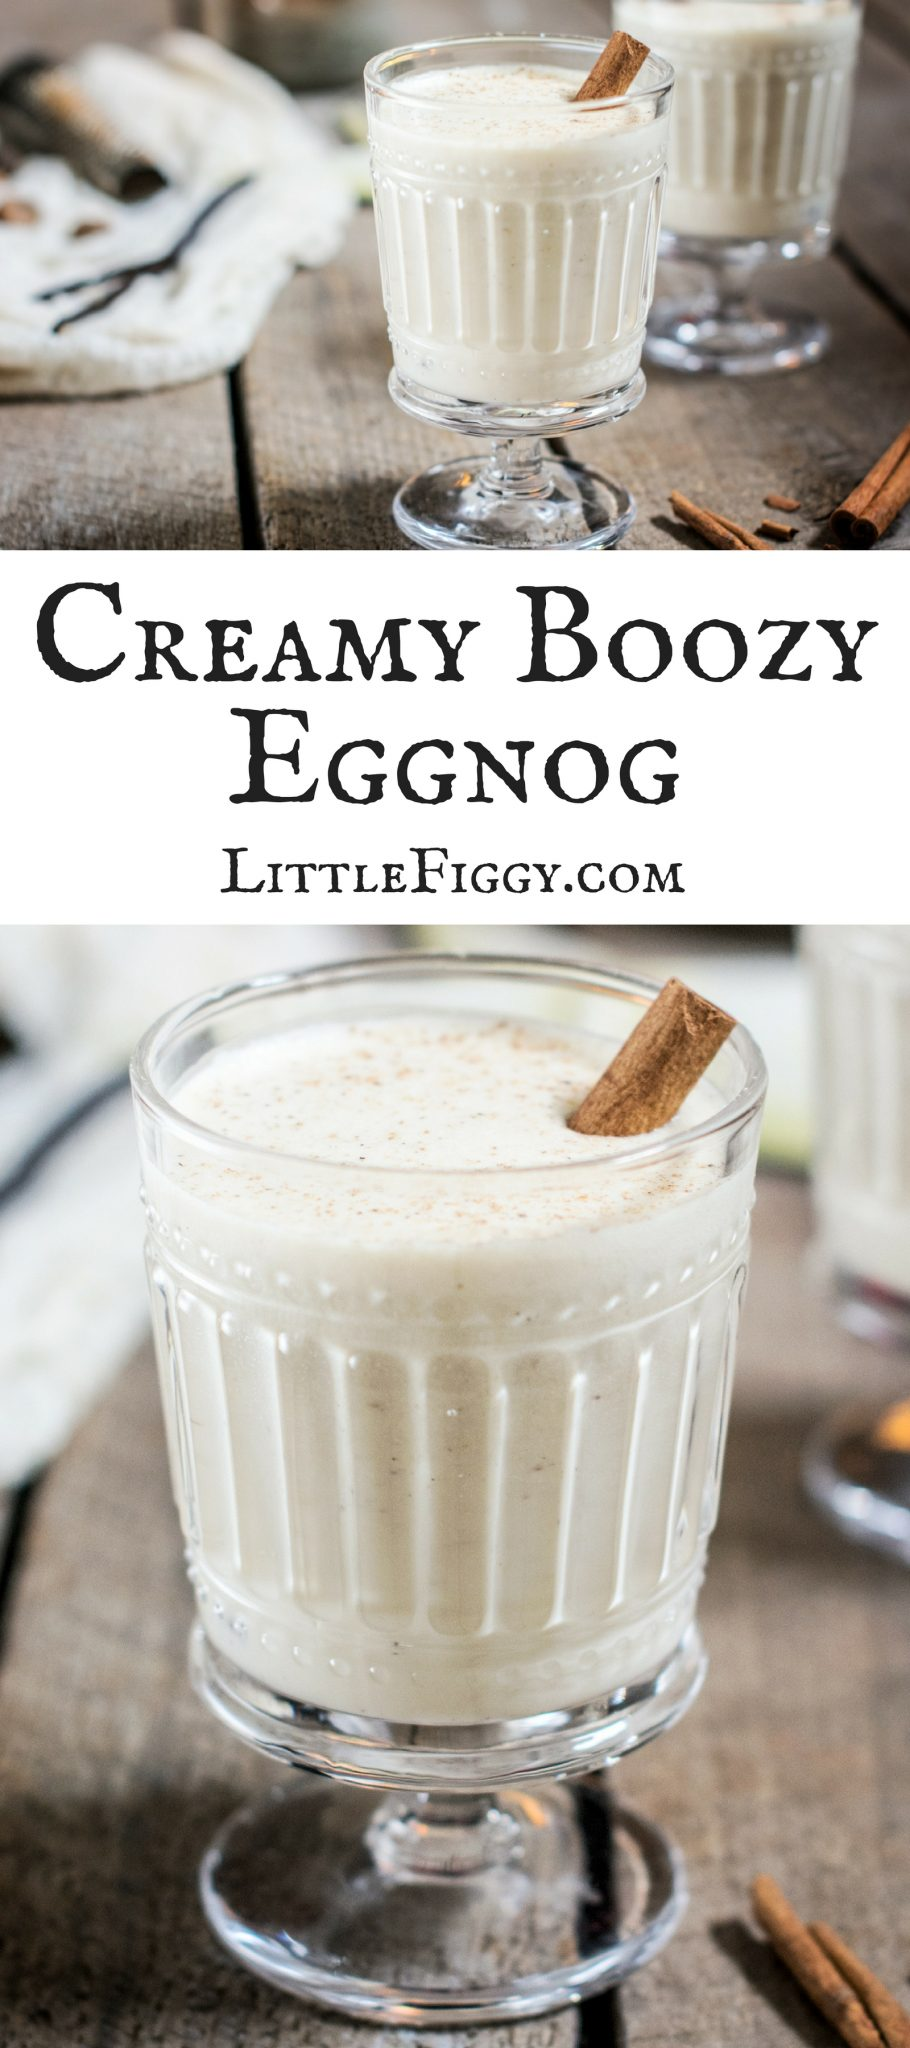 A Boozy and Merry Eggnog, perfect for celebrating the holidays! Get the recipe at Little Figgy Food!